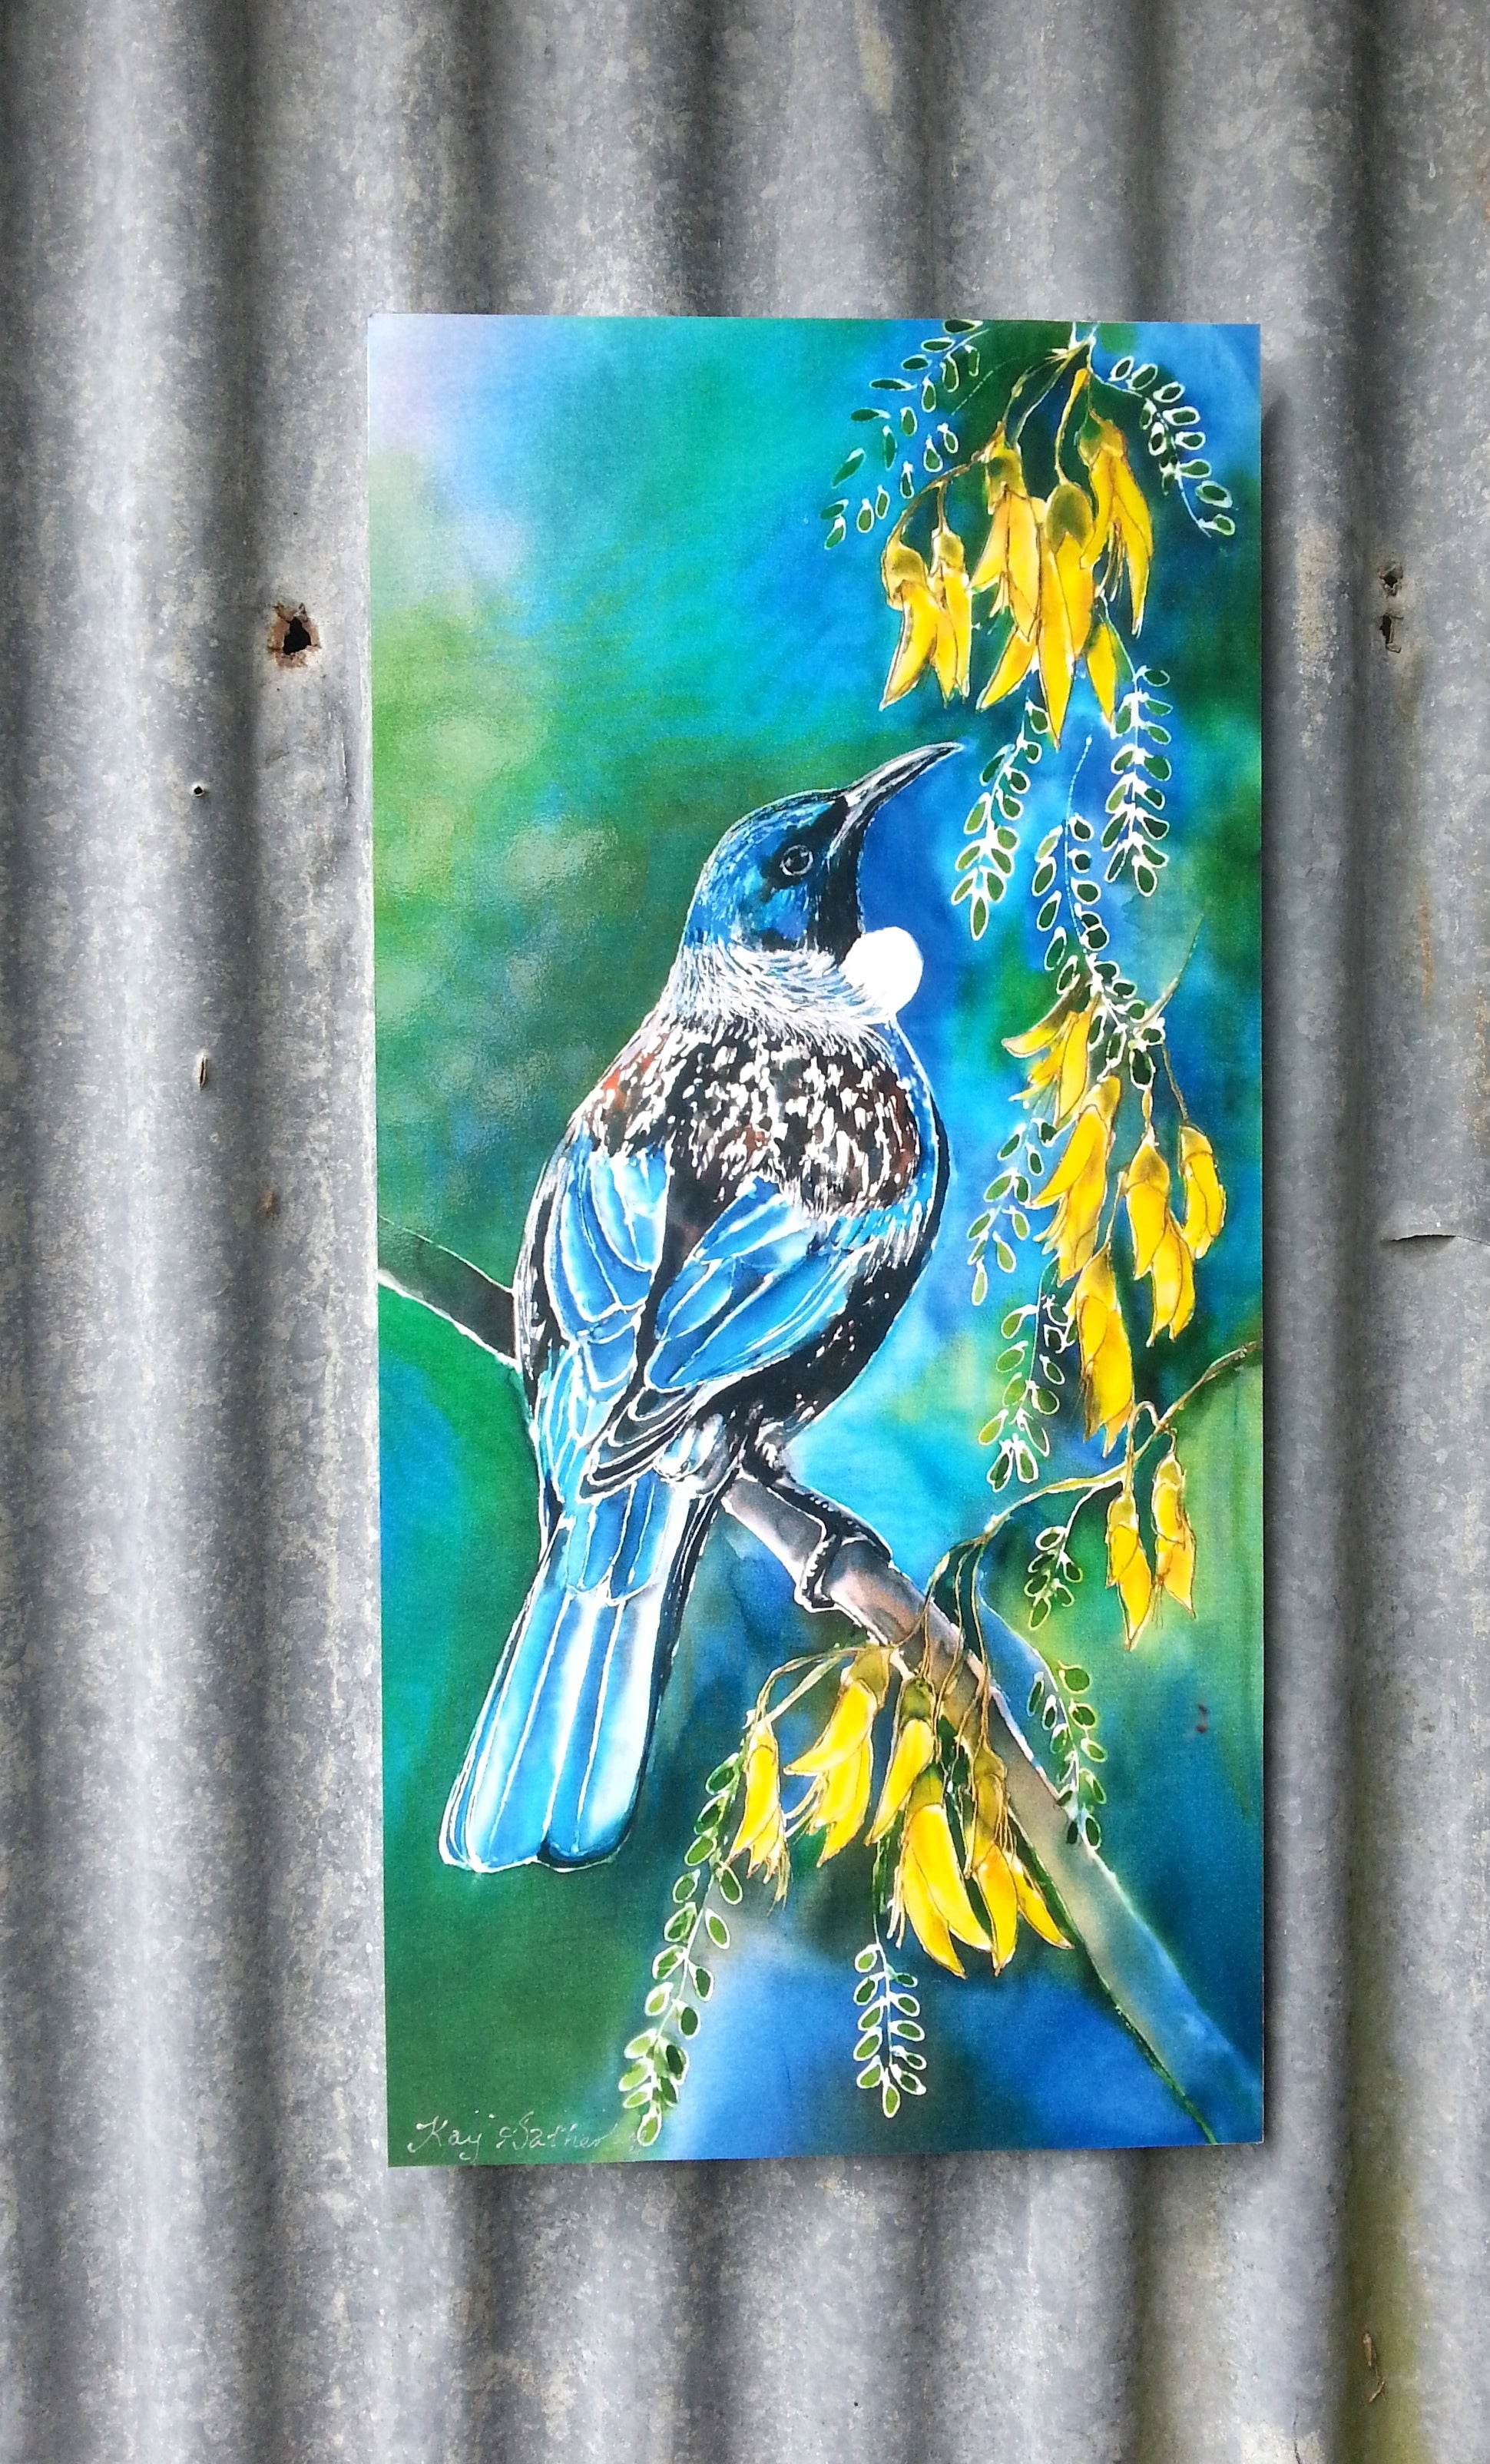 New Zealand Tui Bird on Kowhai Tree - Outdoor Garden Art Panel - Satherley Silks NZ